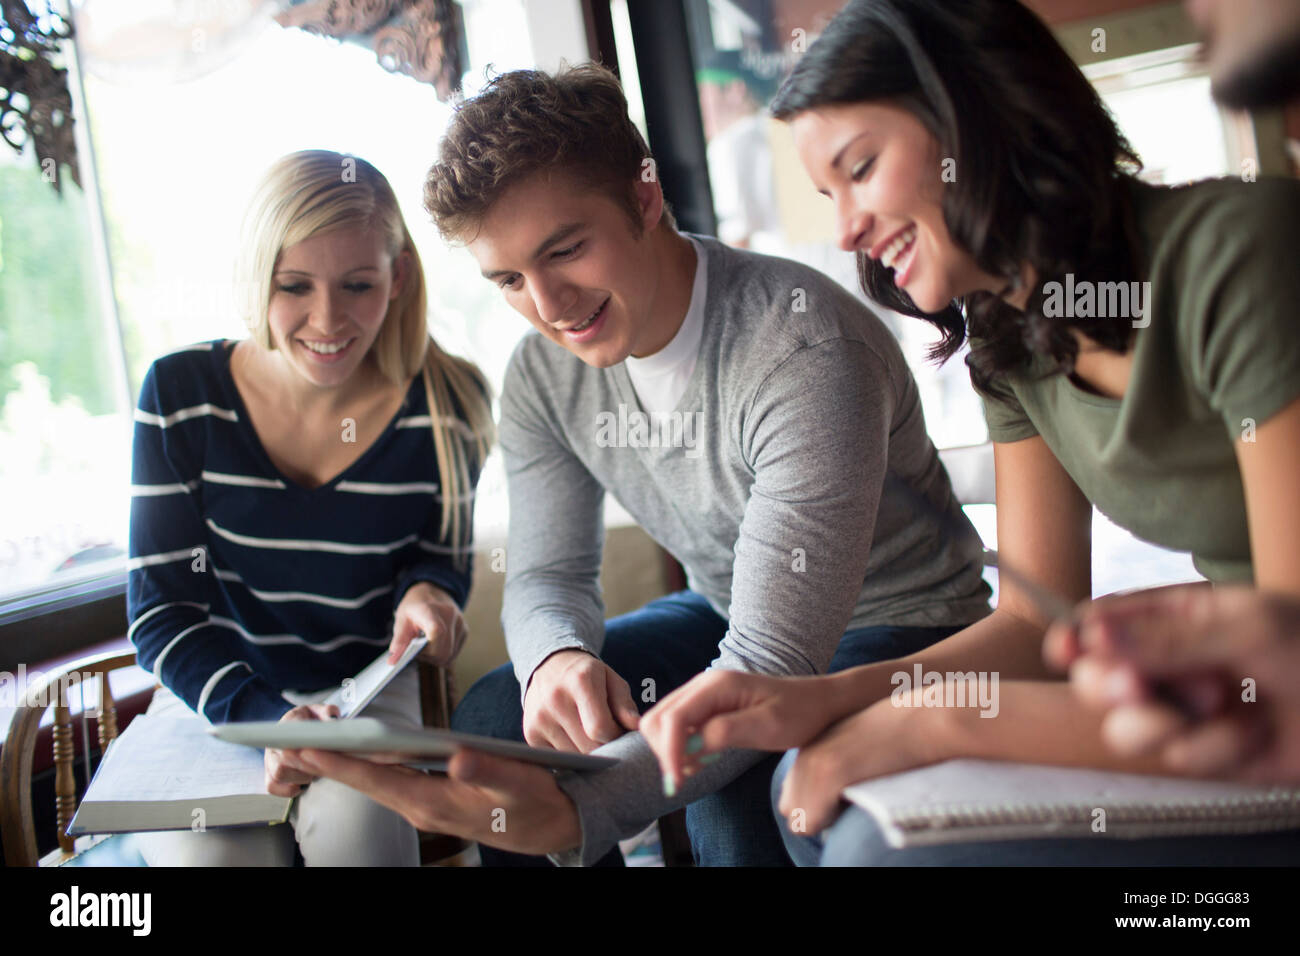 Group of people studying together in cafe - Stock Image